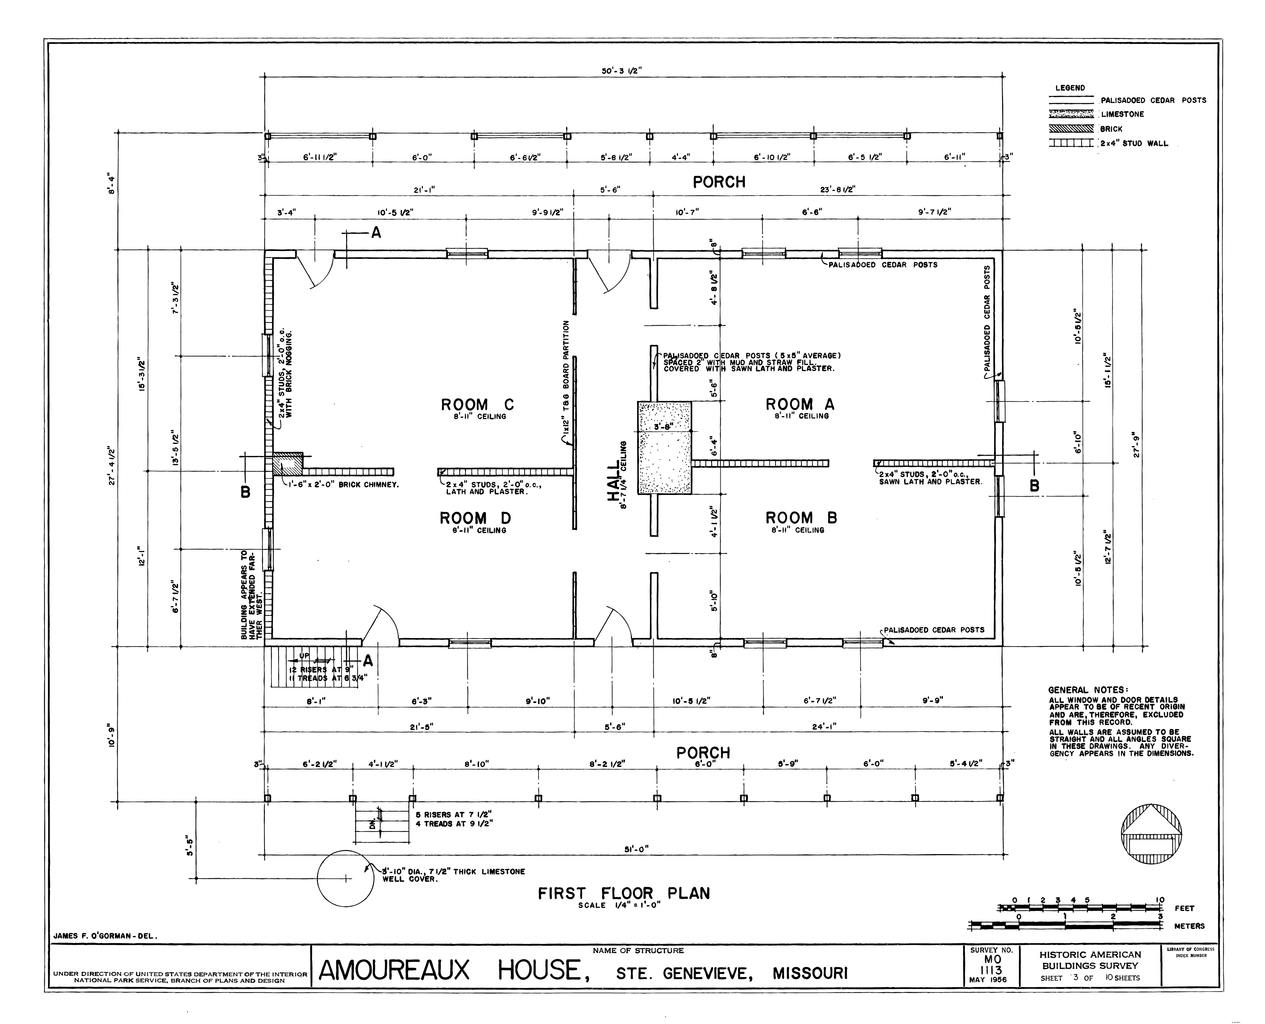 file drawing of the first floor plan amoureaux house in